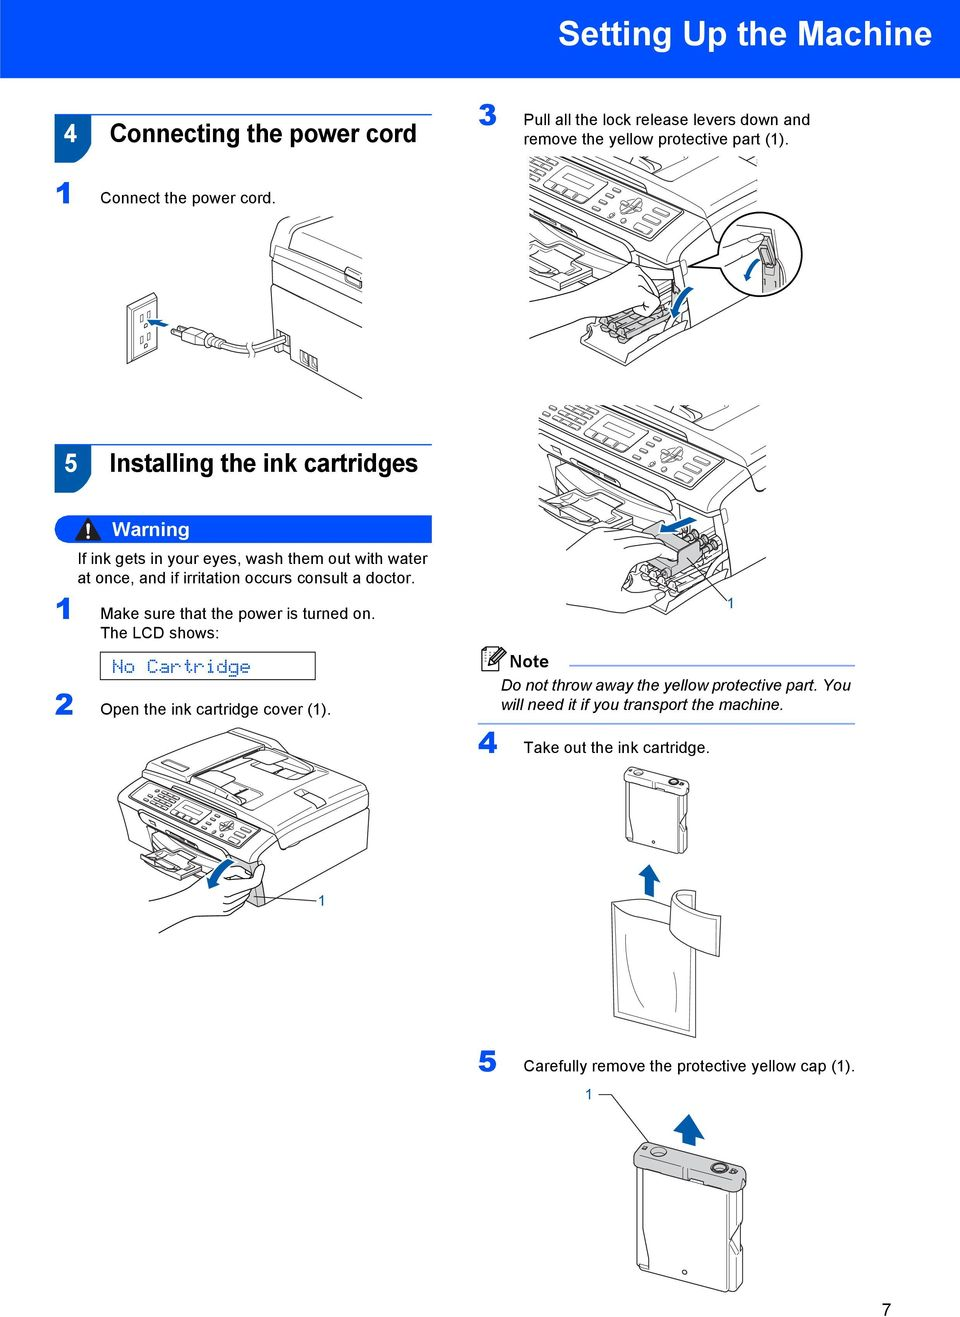 5 Installing the ink cartridges Warning If ink gets in your eyes, wash them out with water at once, and if irritation occurs consult a doctor.